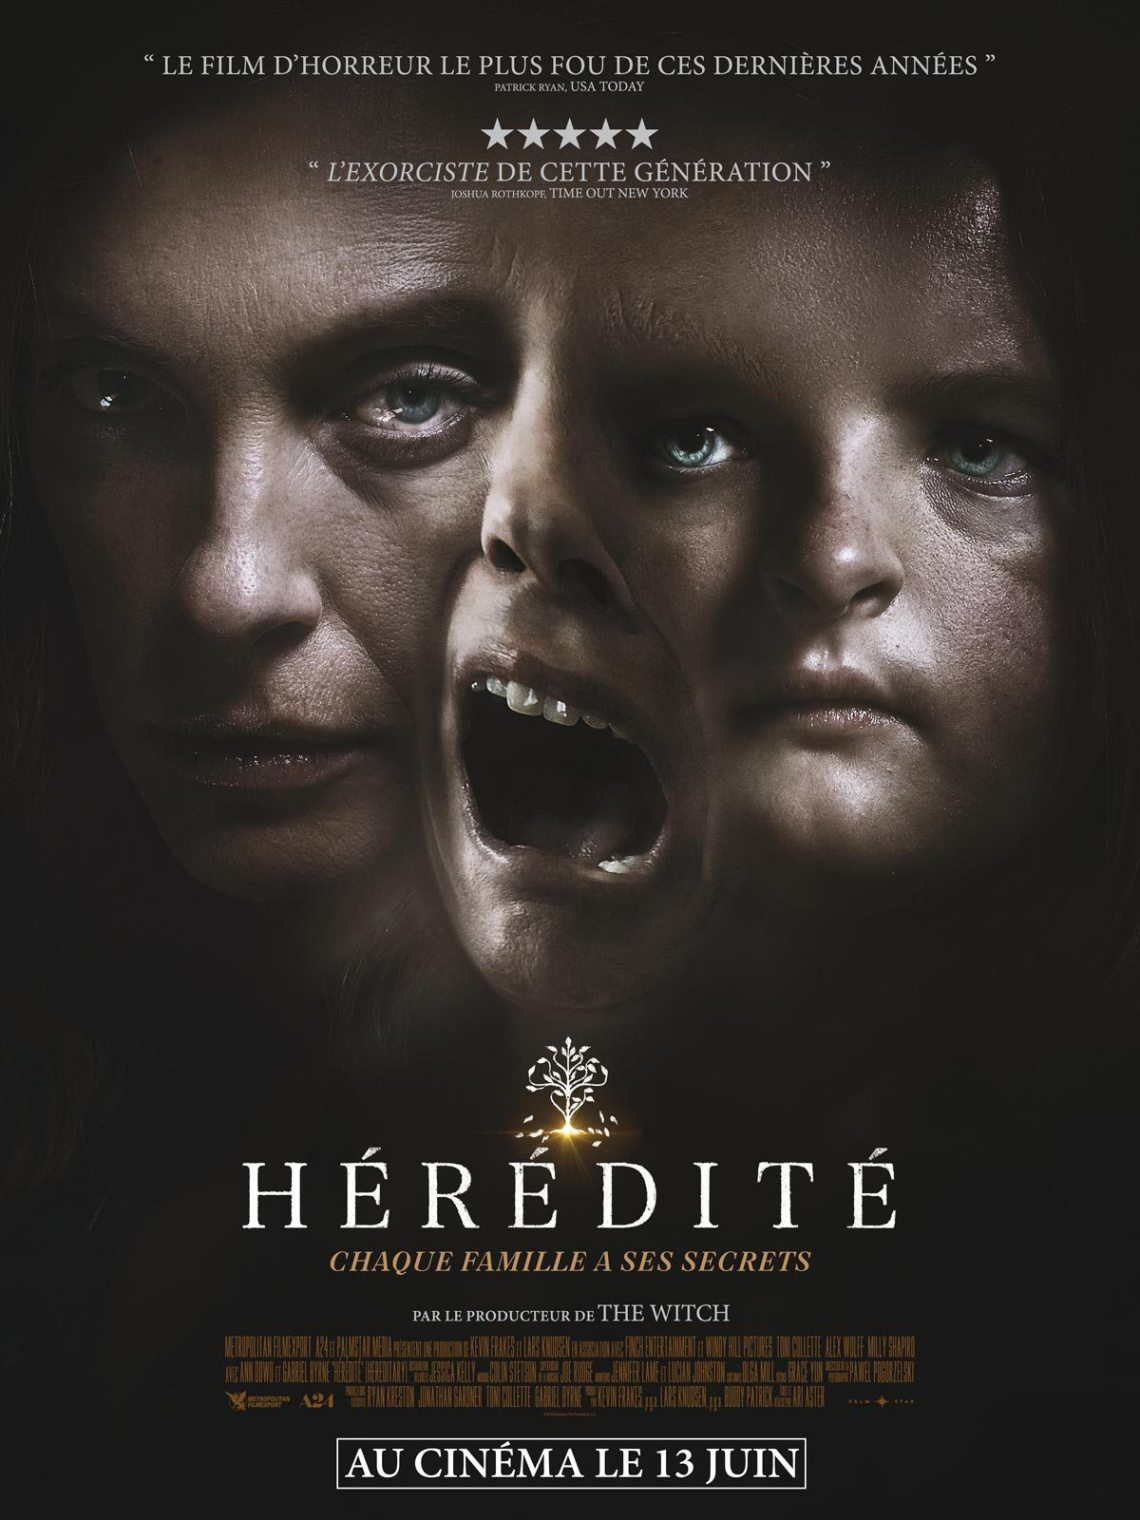 Hereditary-New-French-Poster.jpg